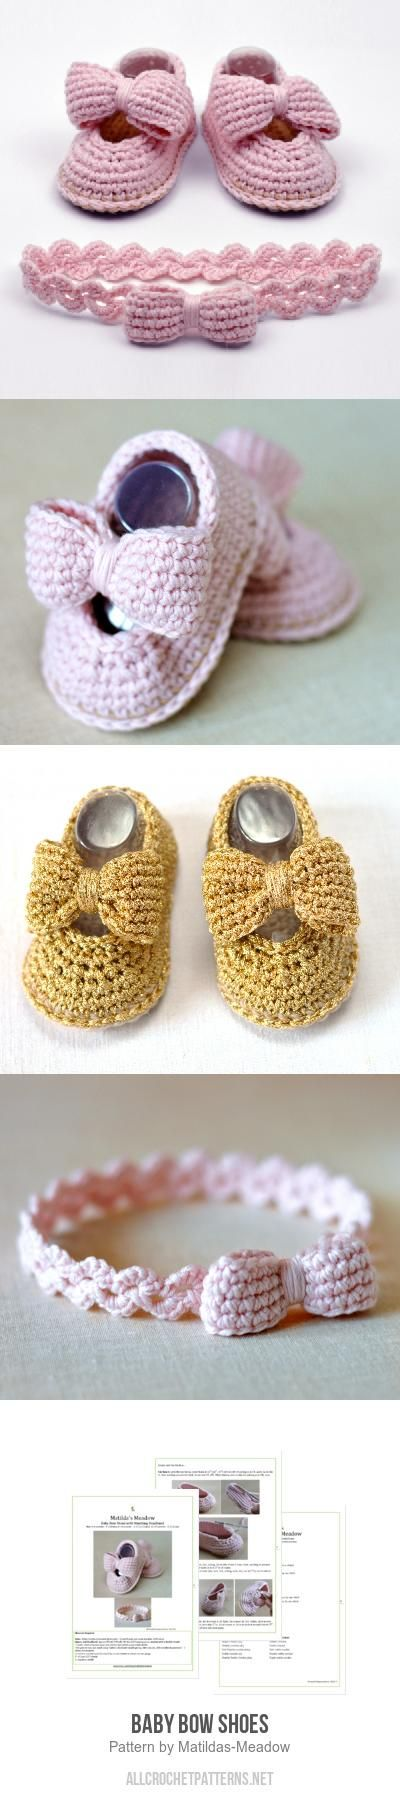 Baby Bow Shoes Crochet Pattern | Baby crochet patterns | Pinterest ...